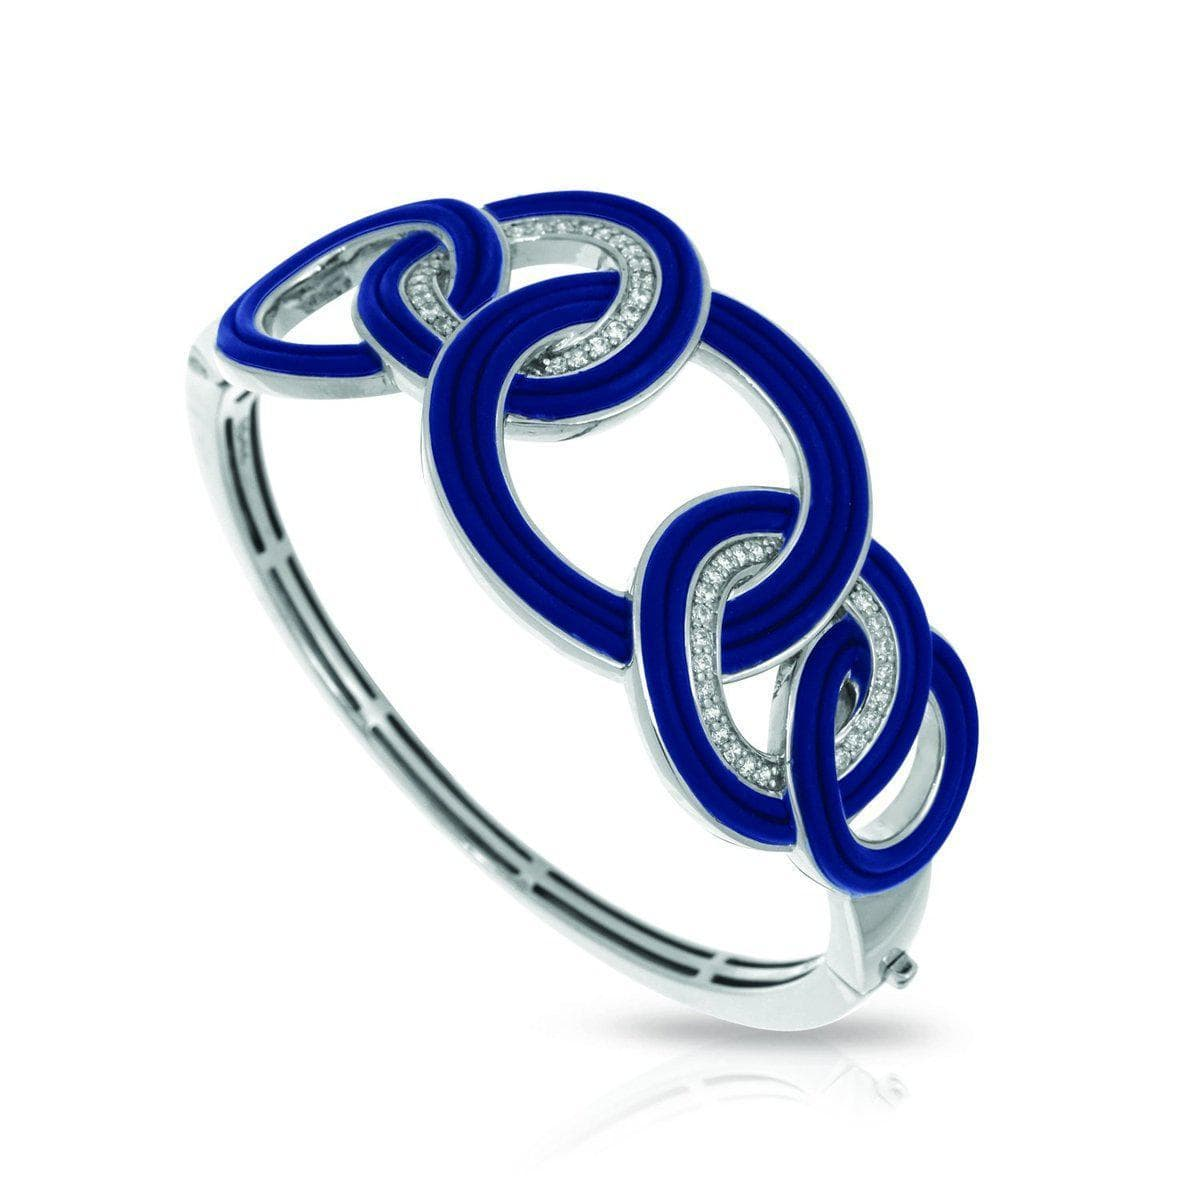 Unity Blue Bangle-Belle Etoile-Renee Taylor Gallery